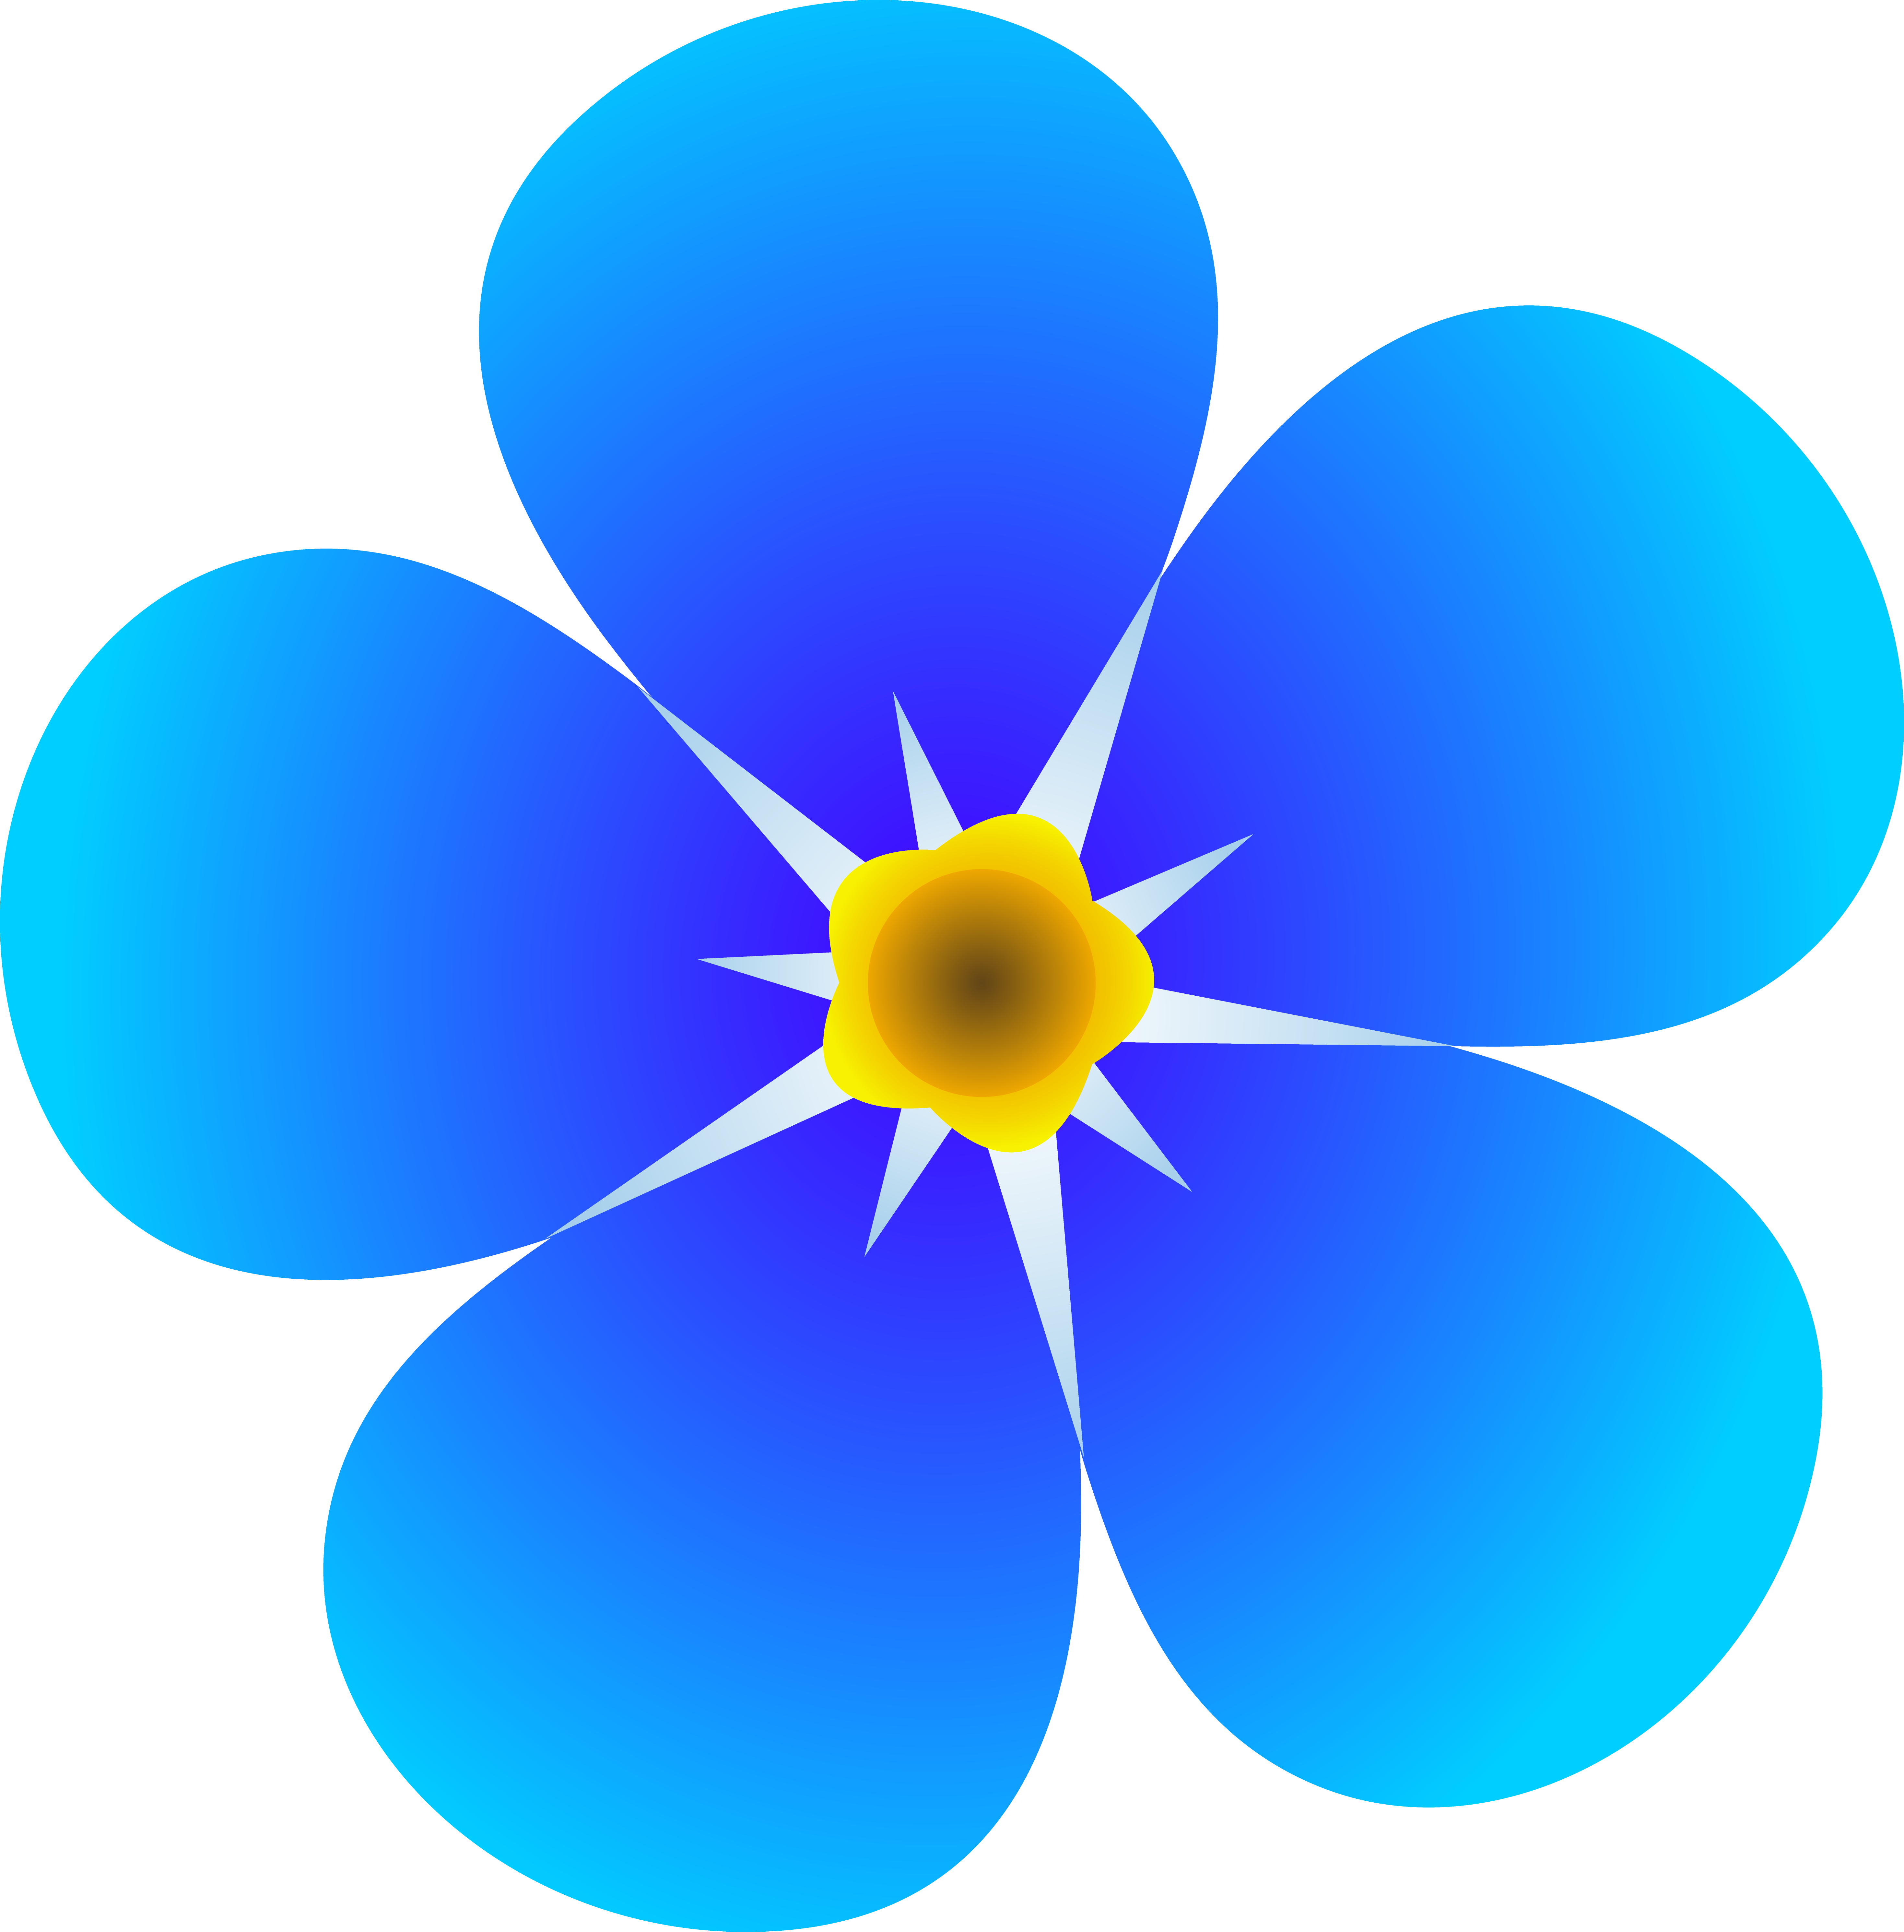 Blue Flower clipart #5, Download drawings